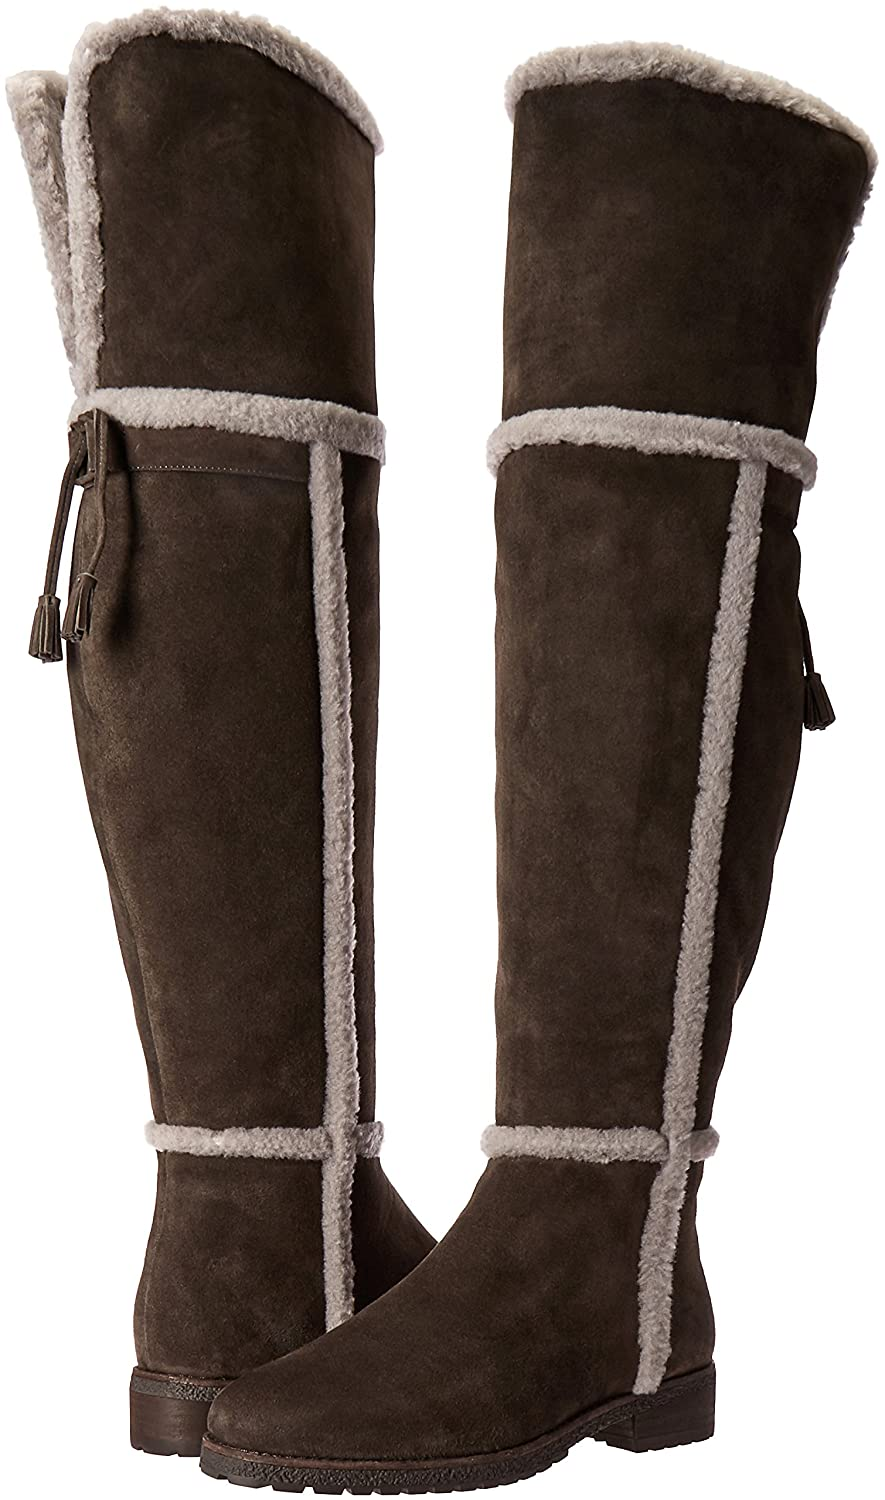 6781689c933 Amazon.com  FRYE Women s Tamara Shearling Otk Winter Boot  Shoes